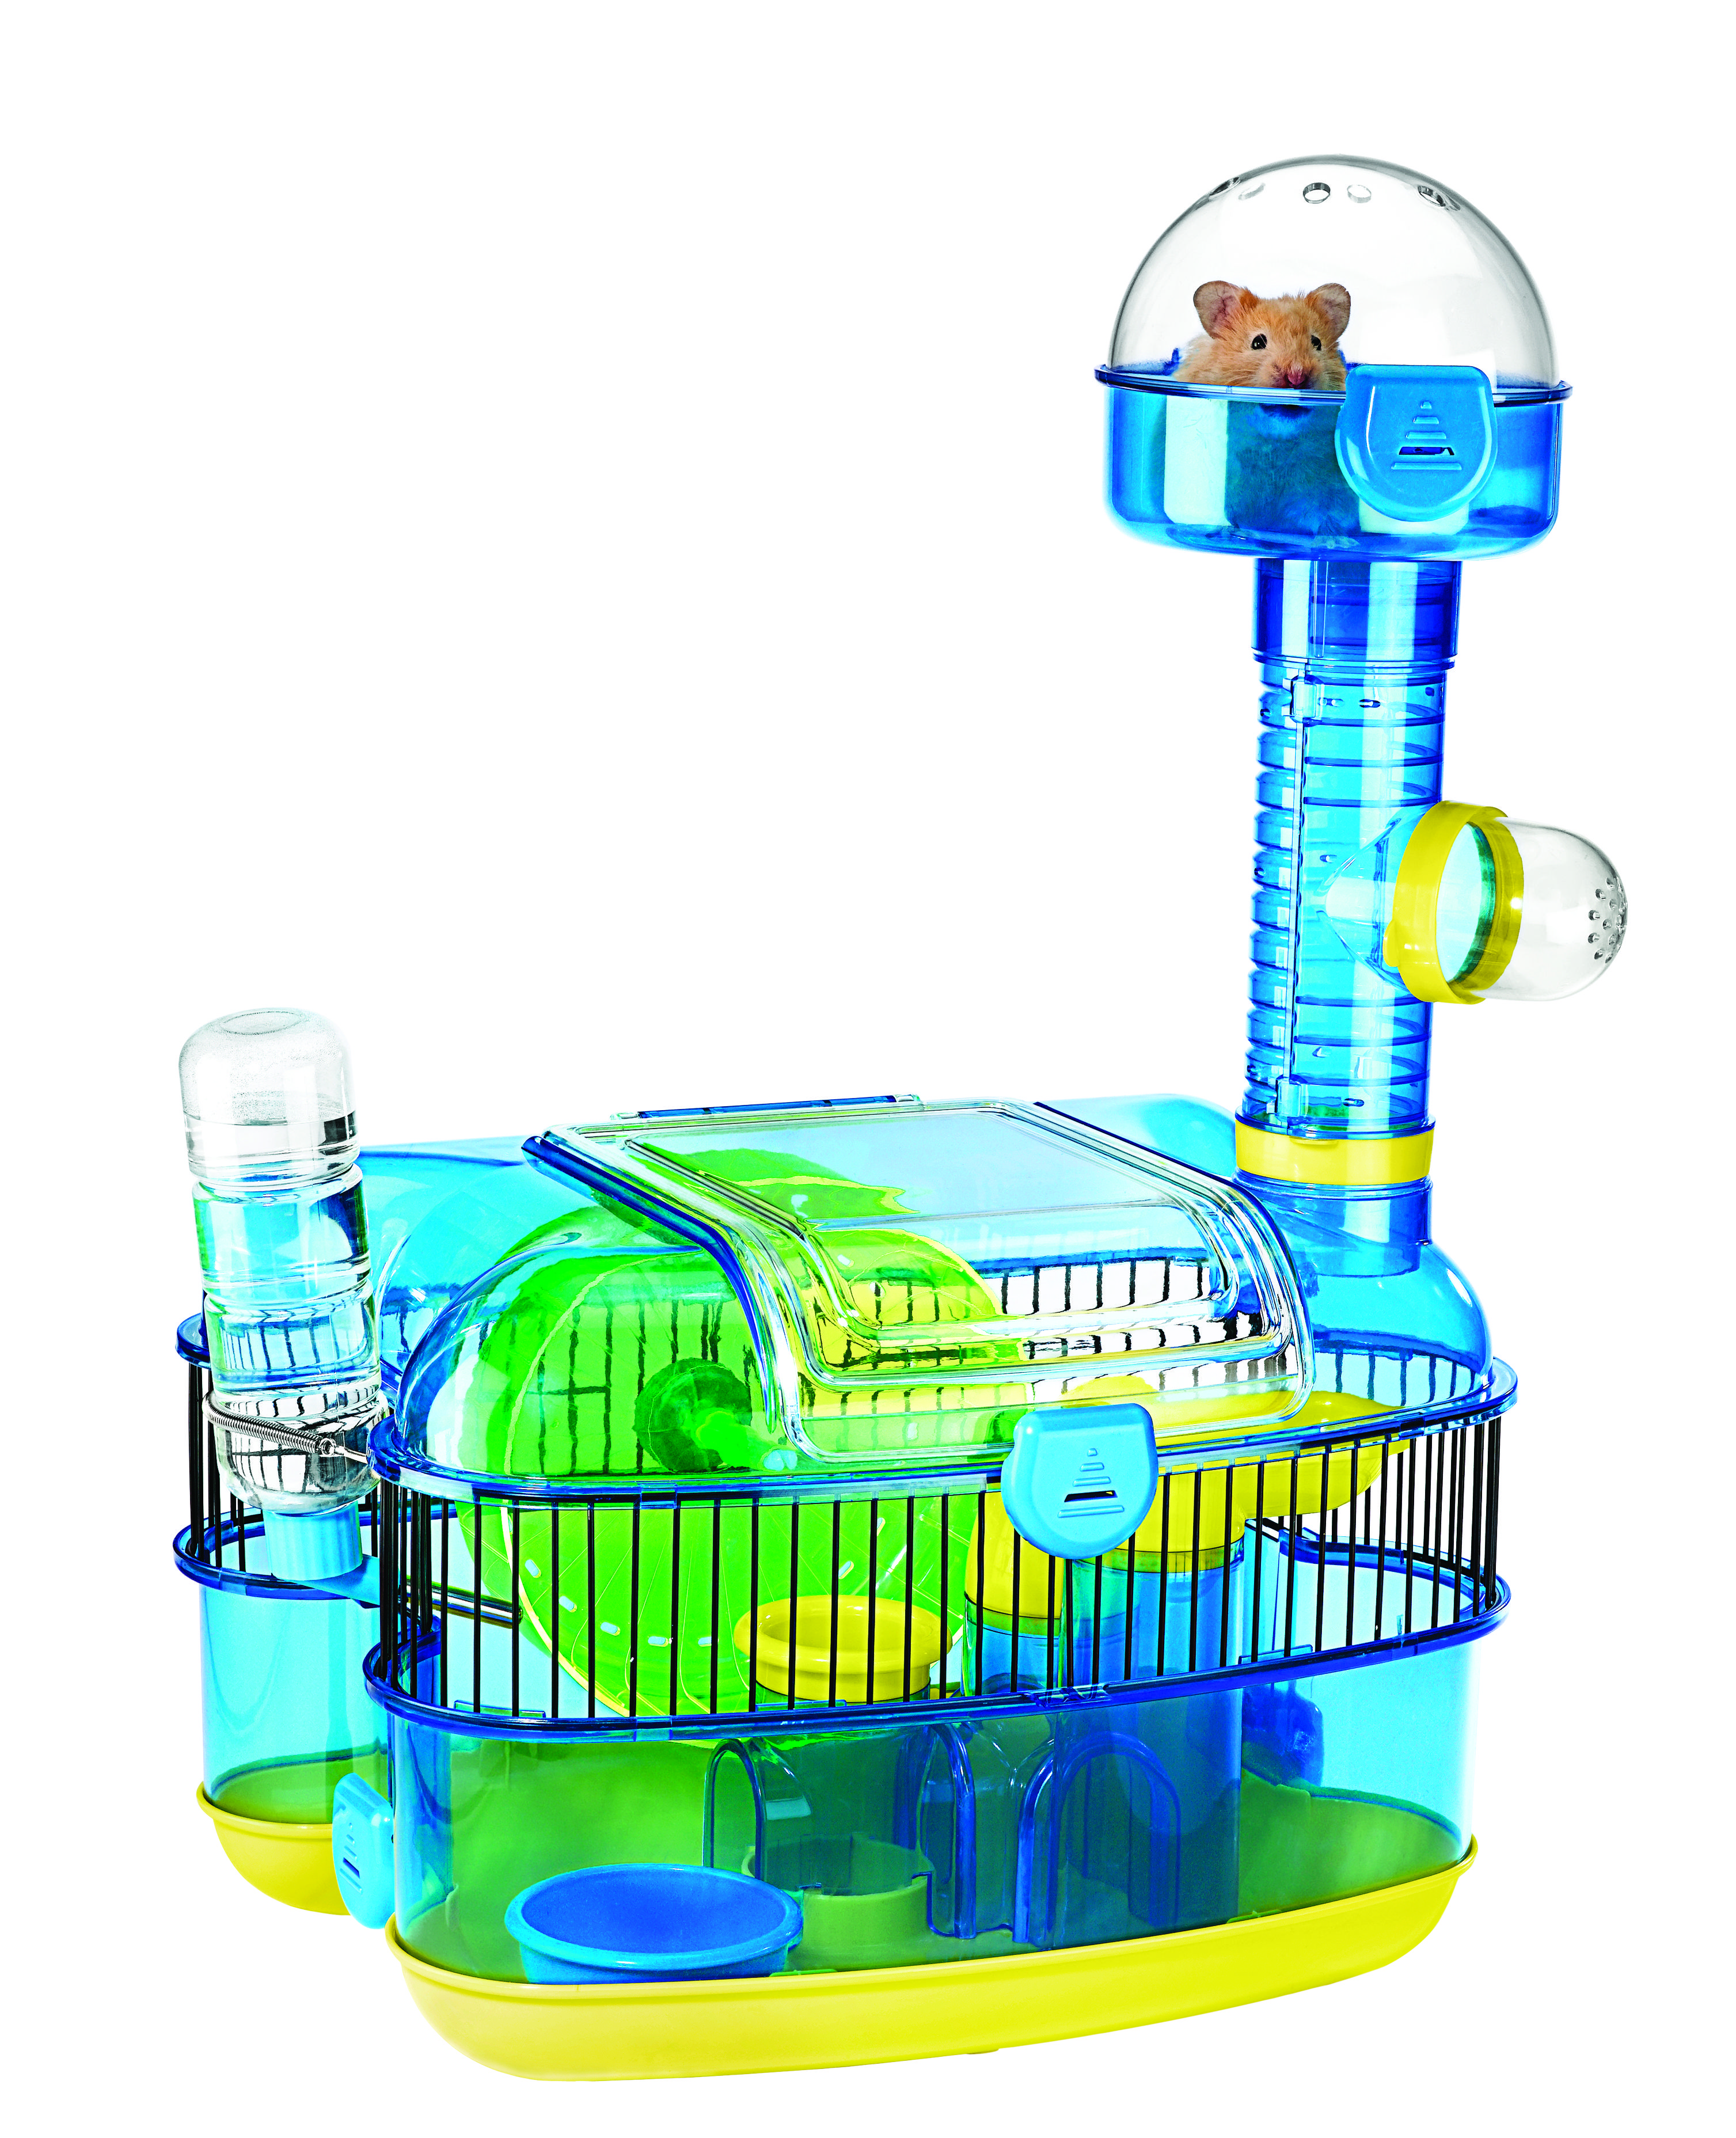 The Plaza A Place Every Hamster Feels Right At Home Small Pets Pet Companies Jw Pet